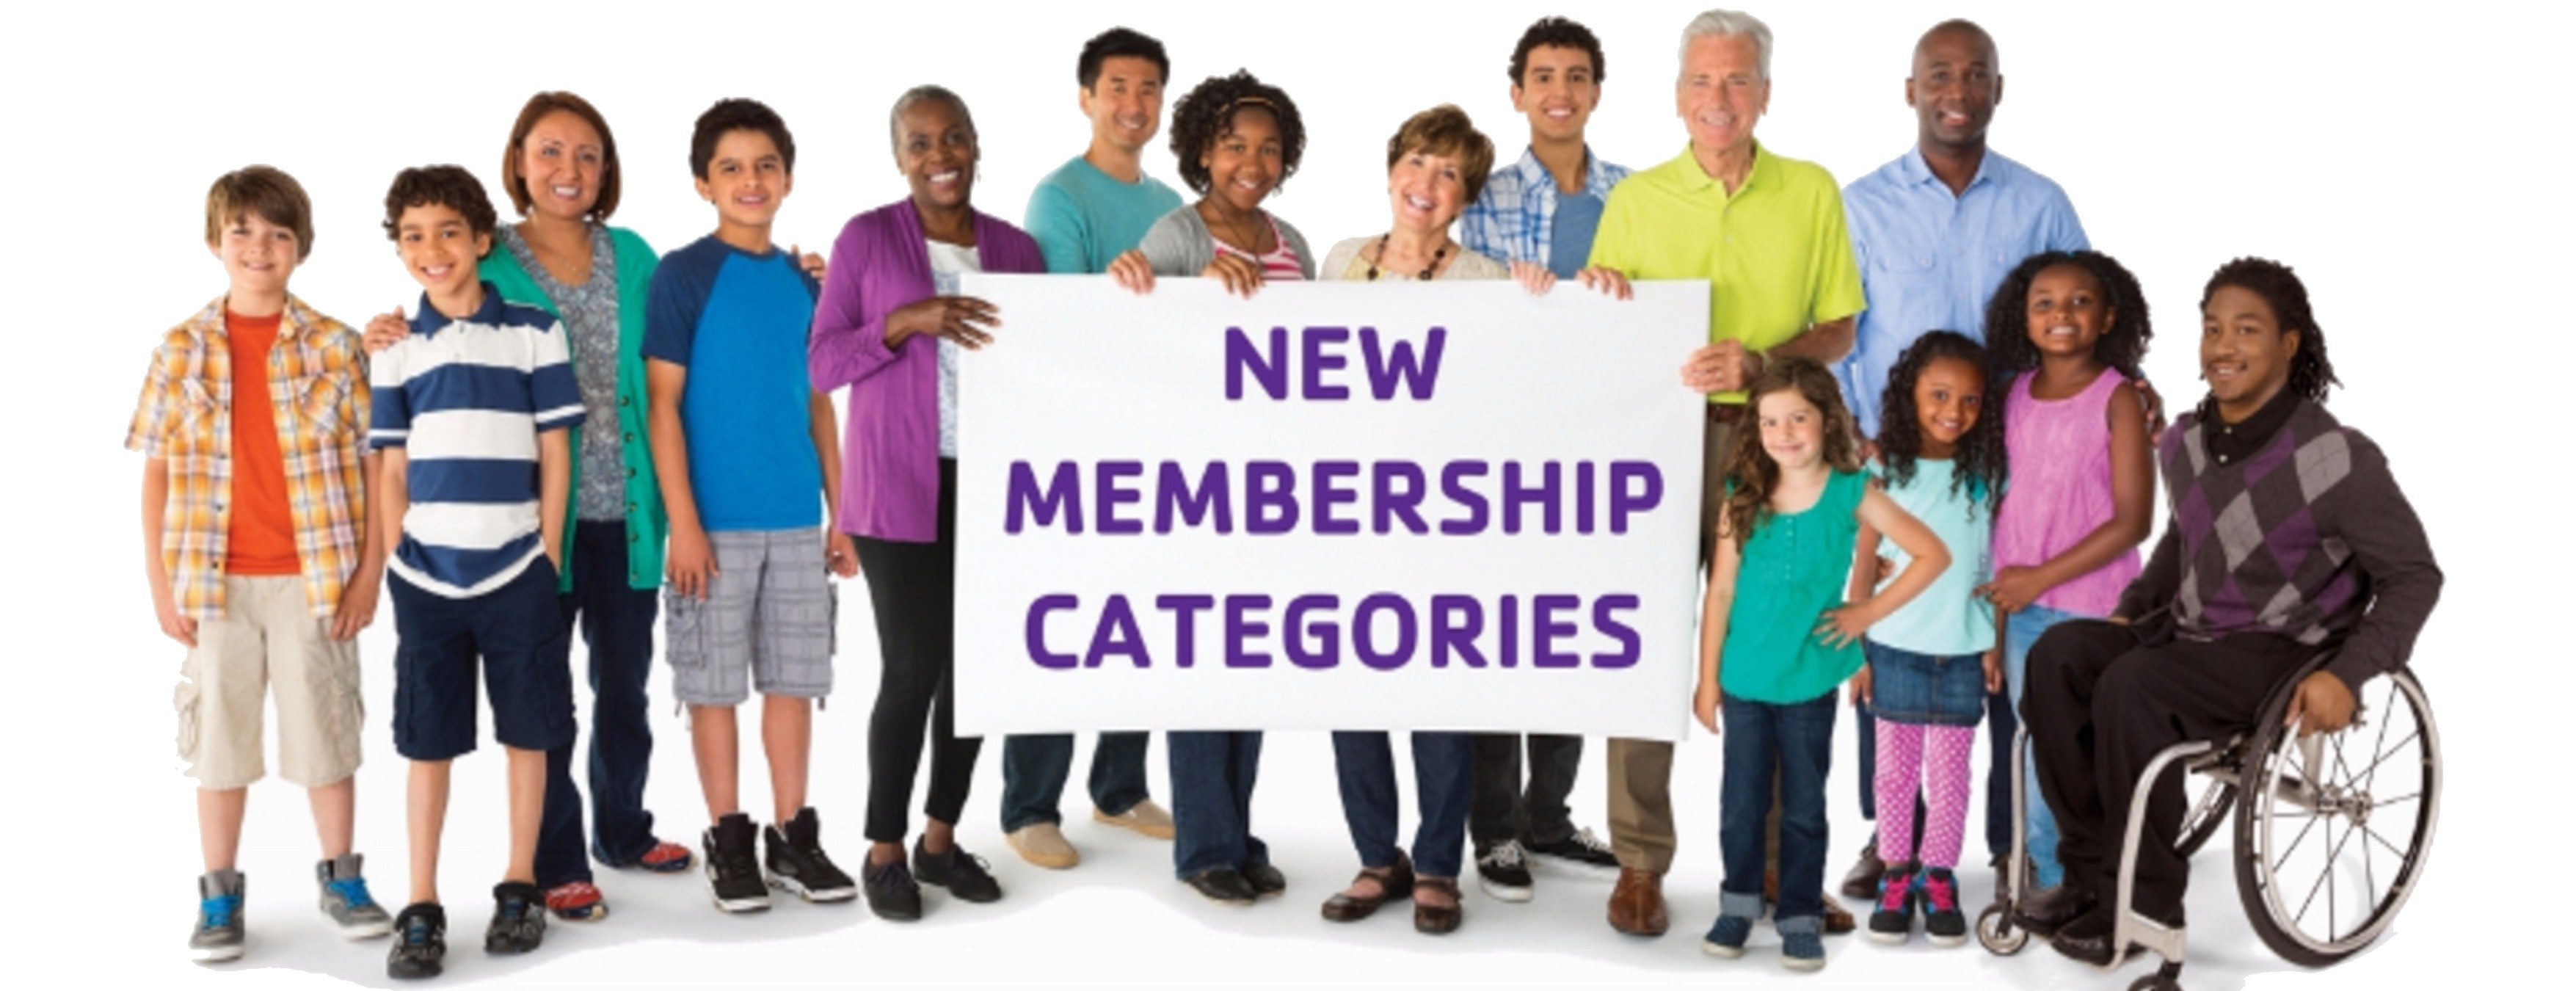 new-memberships-slider2